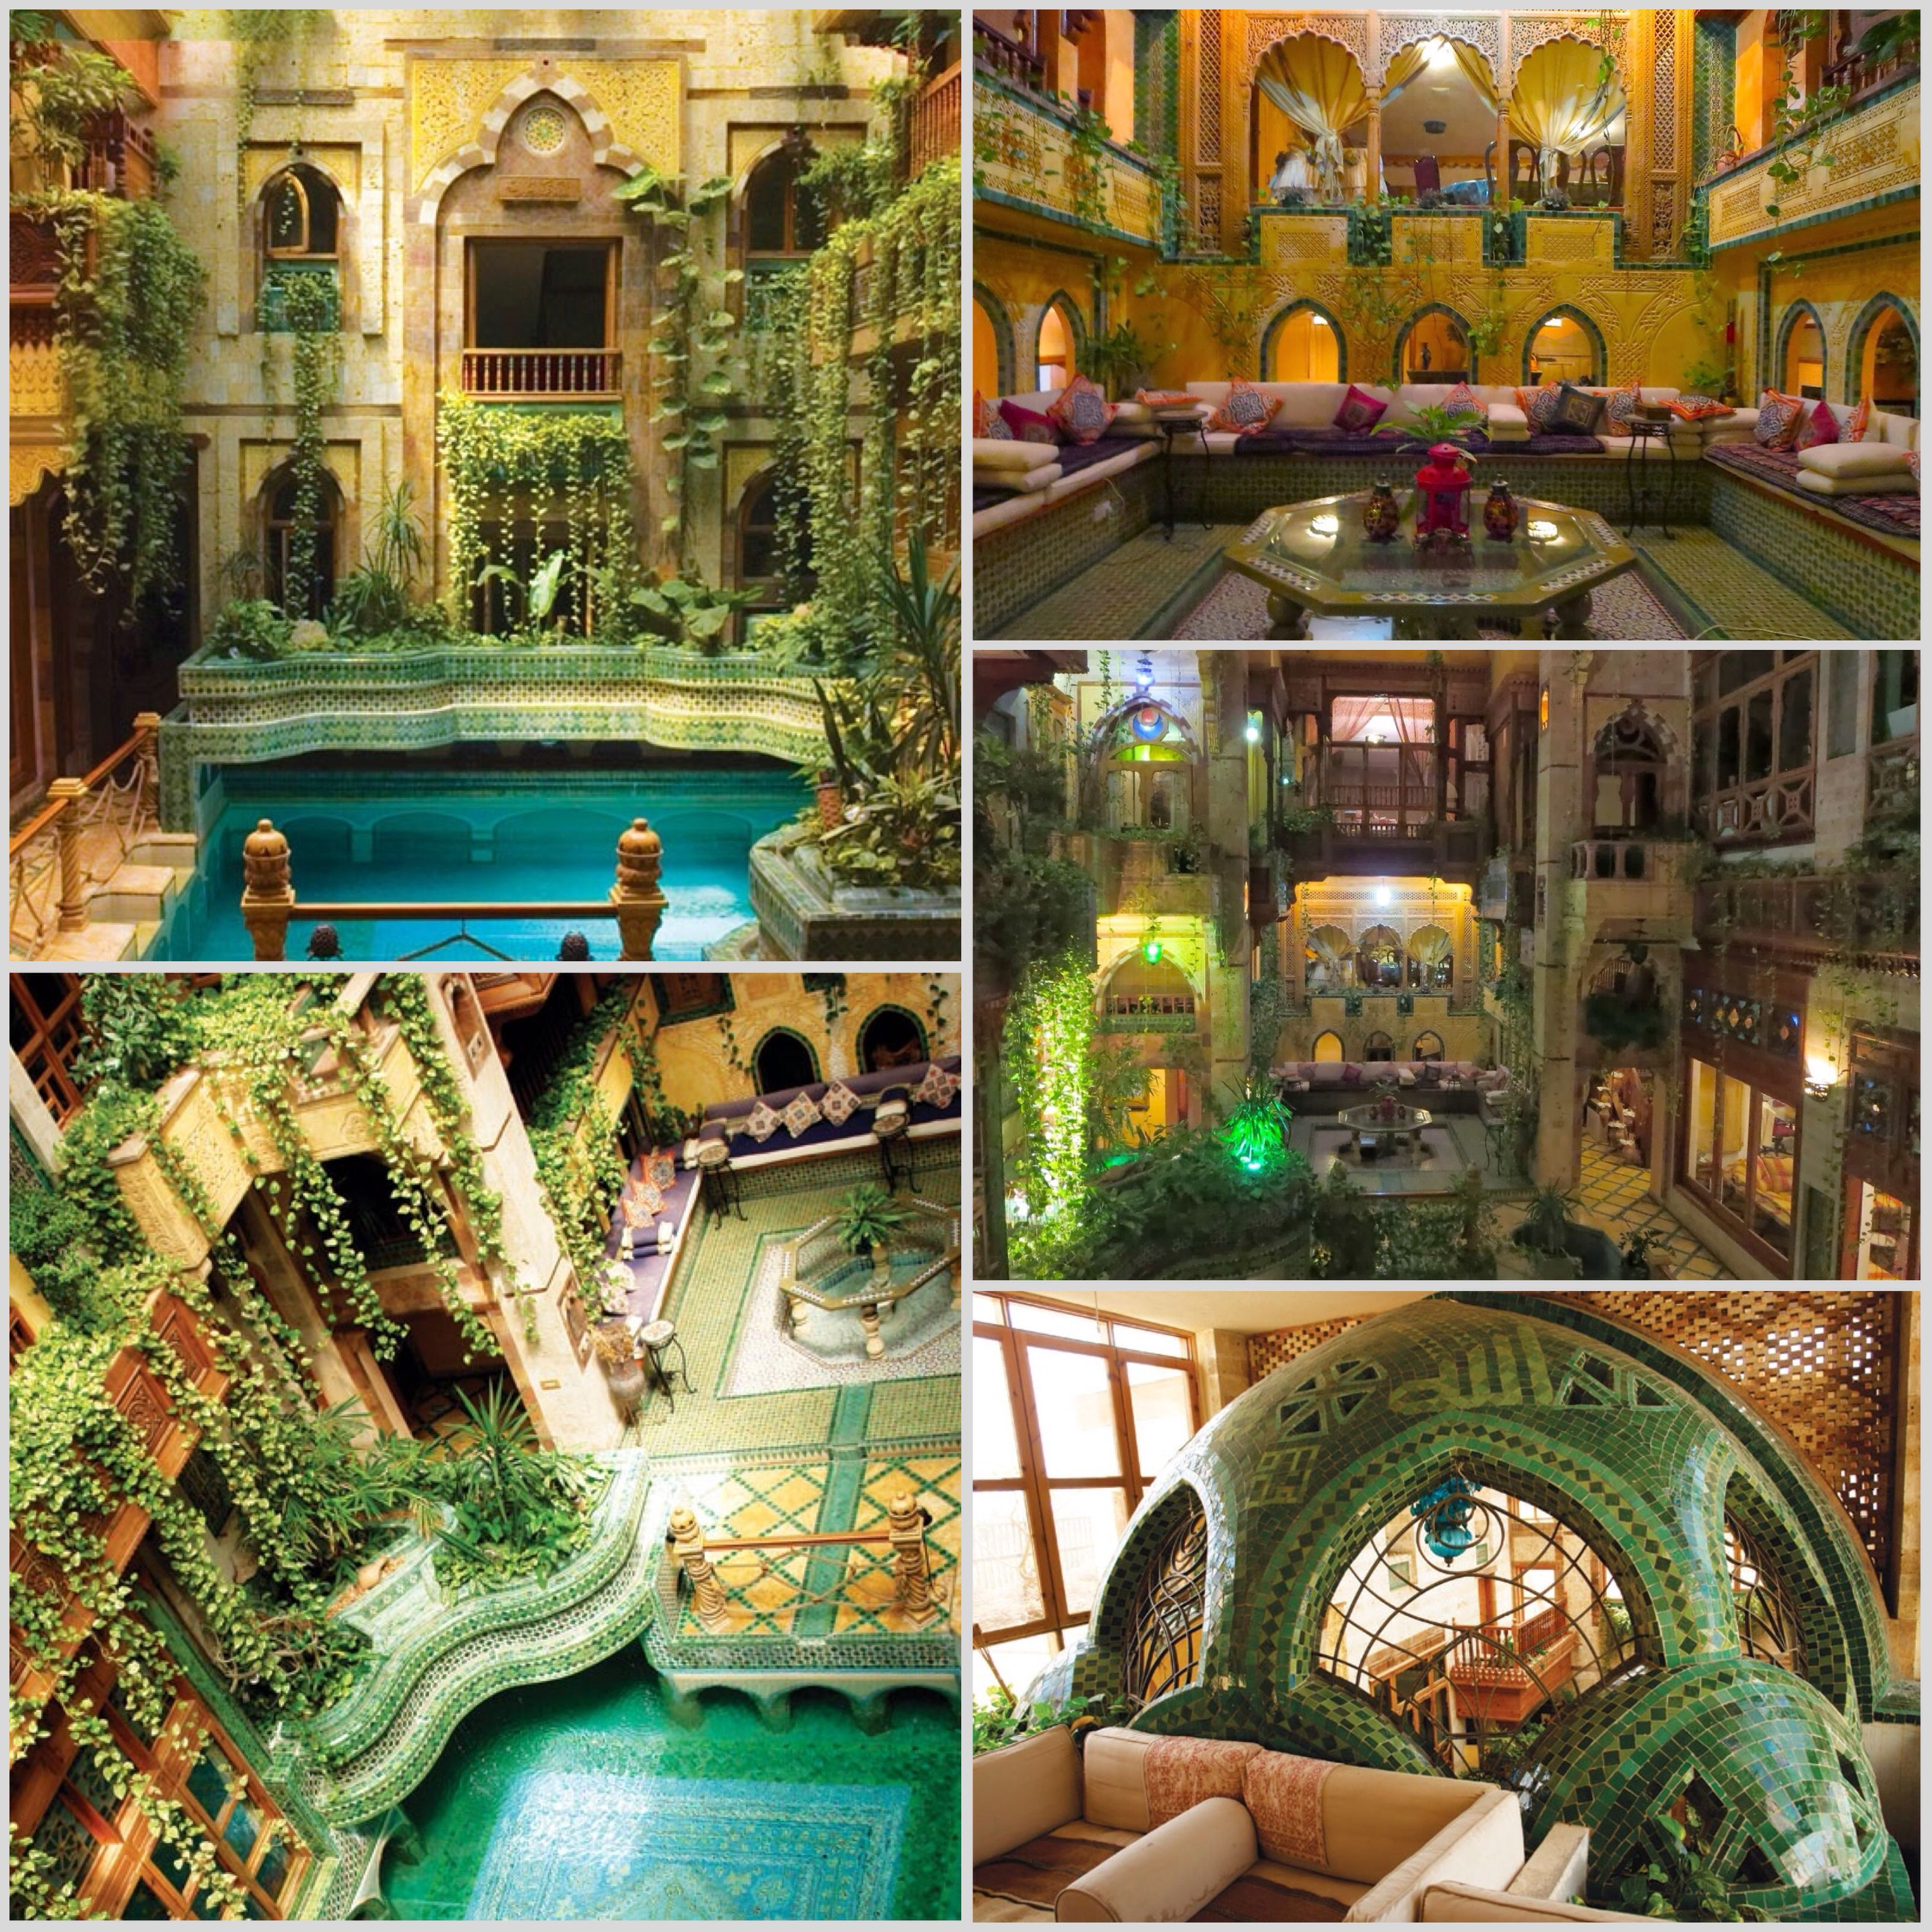 Angawi House In Saudi Arabia Home Of Jeddah Architect Dr Sami Angawi Truly A Fantasy House Fantasy House Beautiful Buildings Architecture